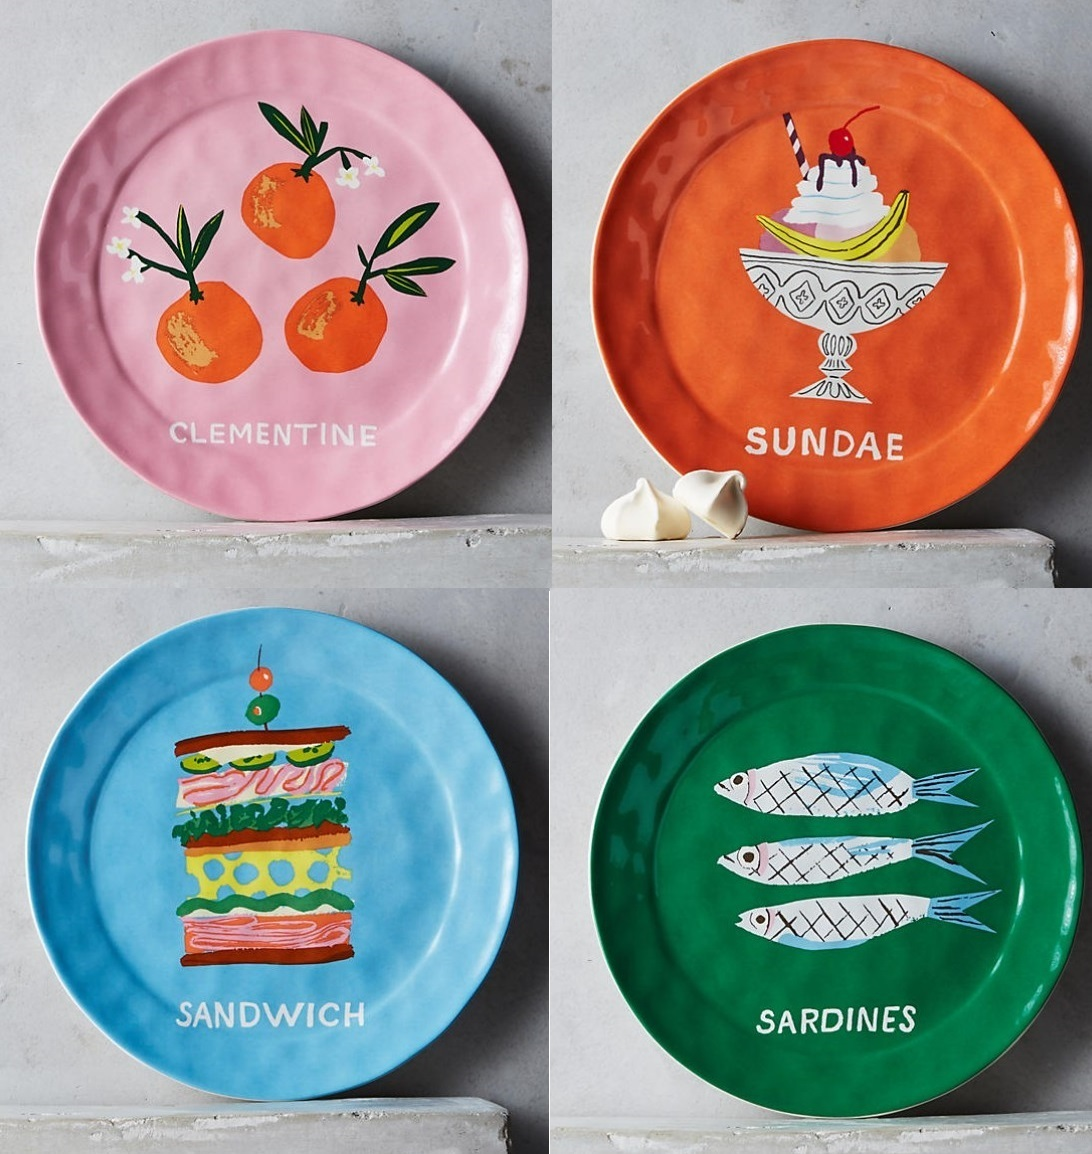 Anthropologie☆Pictoral Dessert Plate お皿4枚セット 国内発送